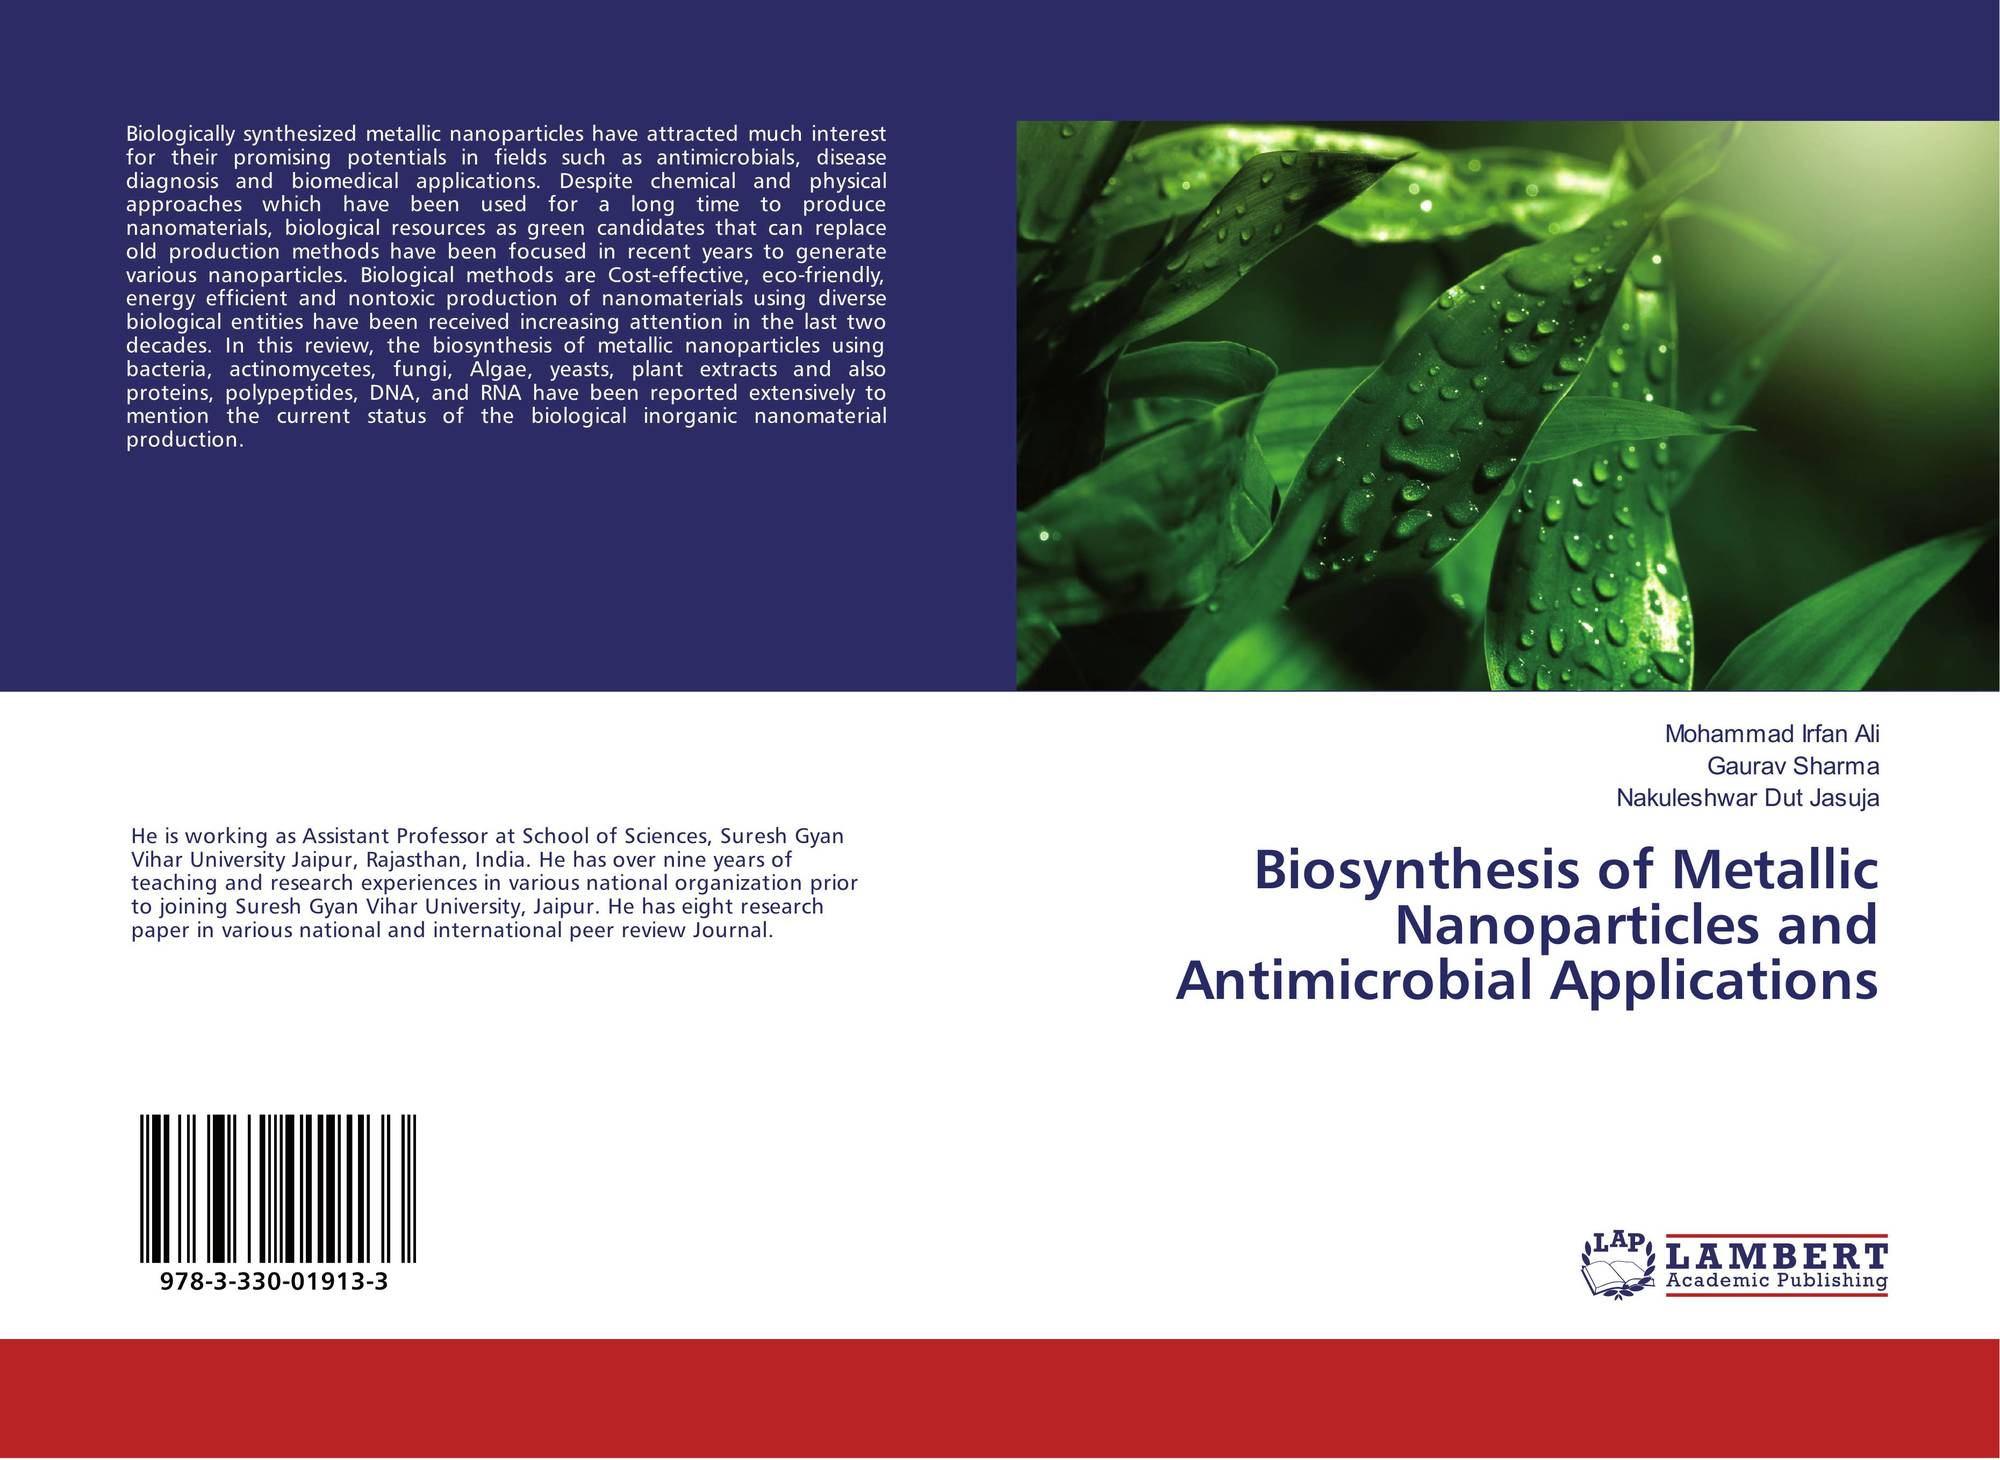 """phd thesis synthesis """"synthesis and reactions of α-azido alcohols"""" chemnitz university of  technology, faculty of natural science  department of organic chemistry phd  thesis."""